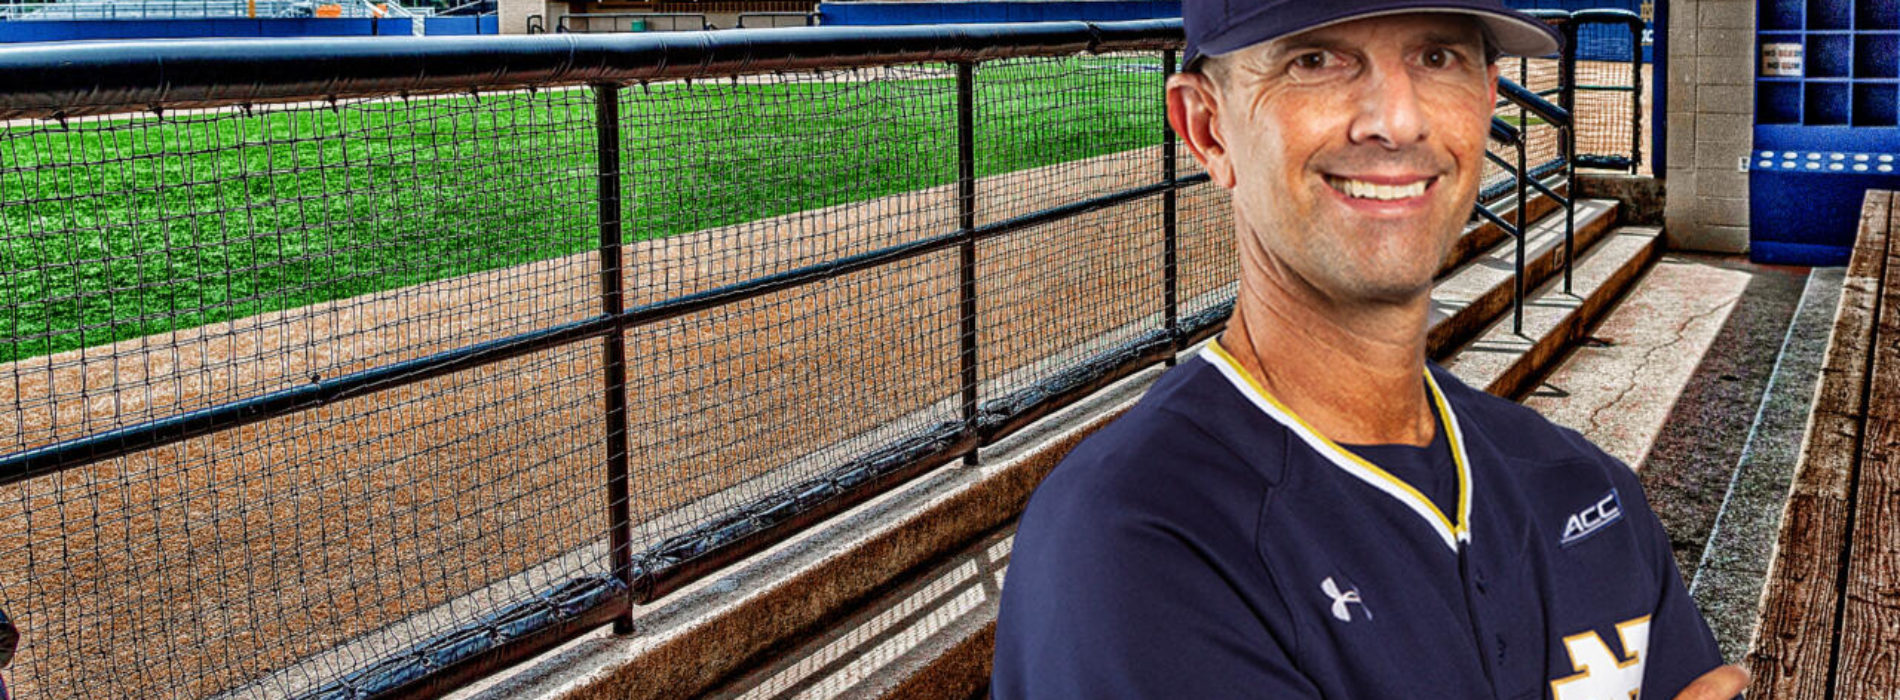 Link Jarrett Named Notre Dame Head Baseball Coach